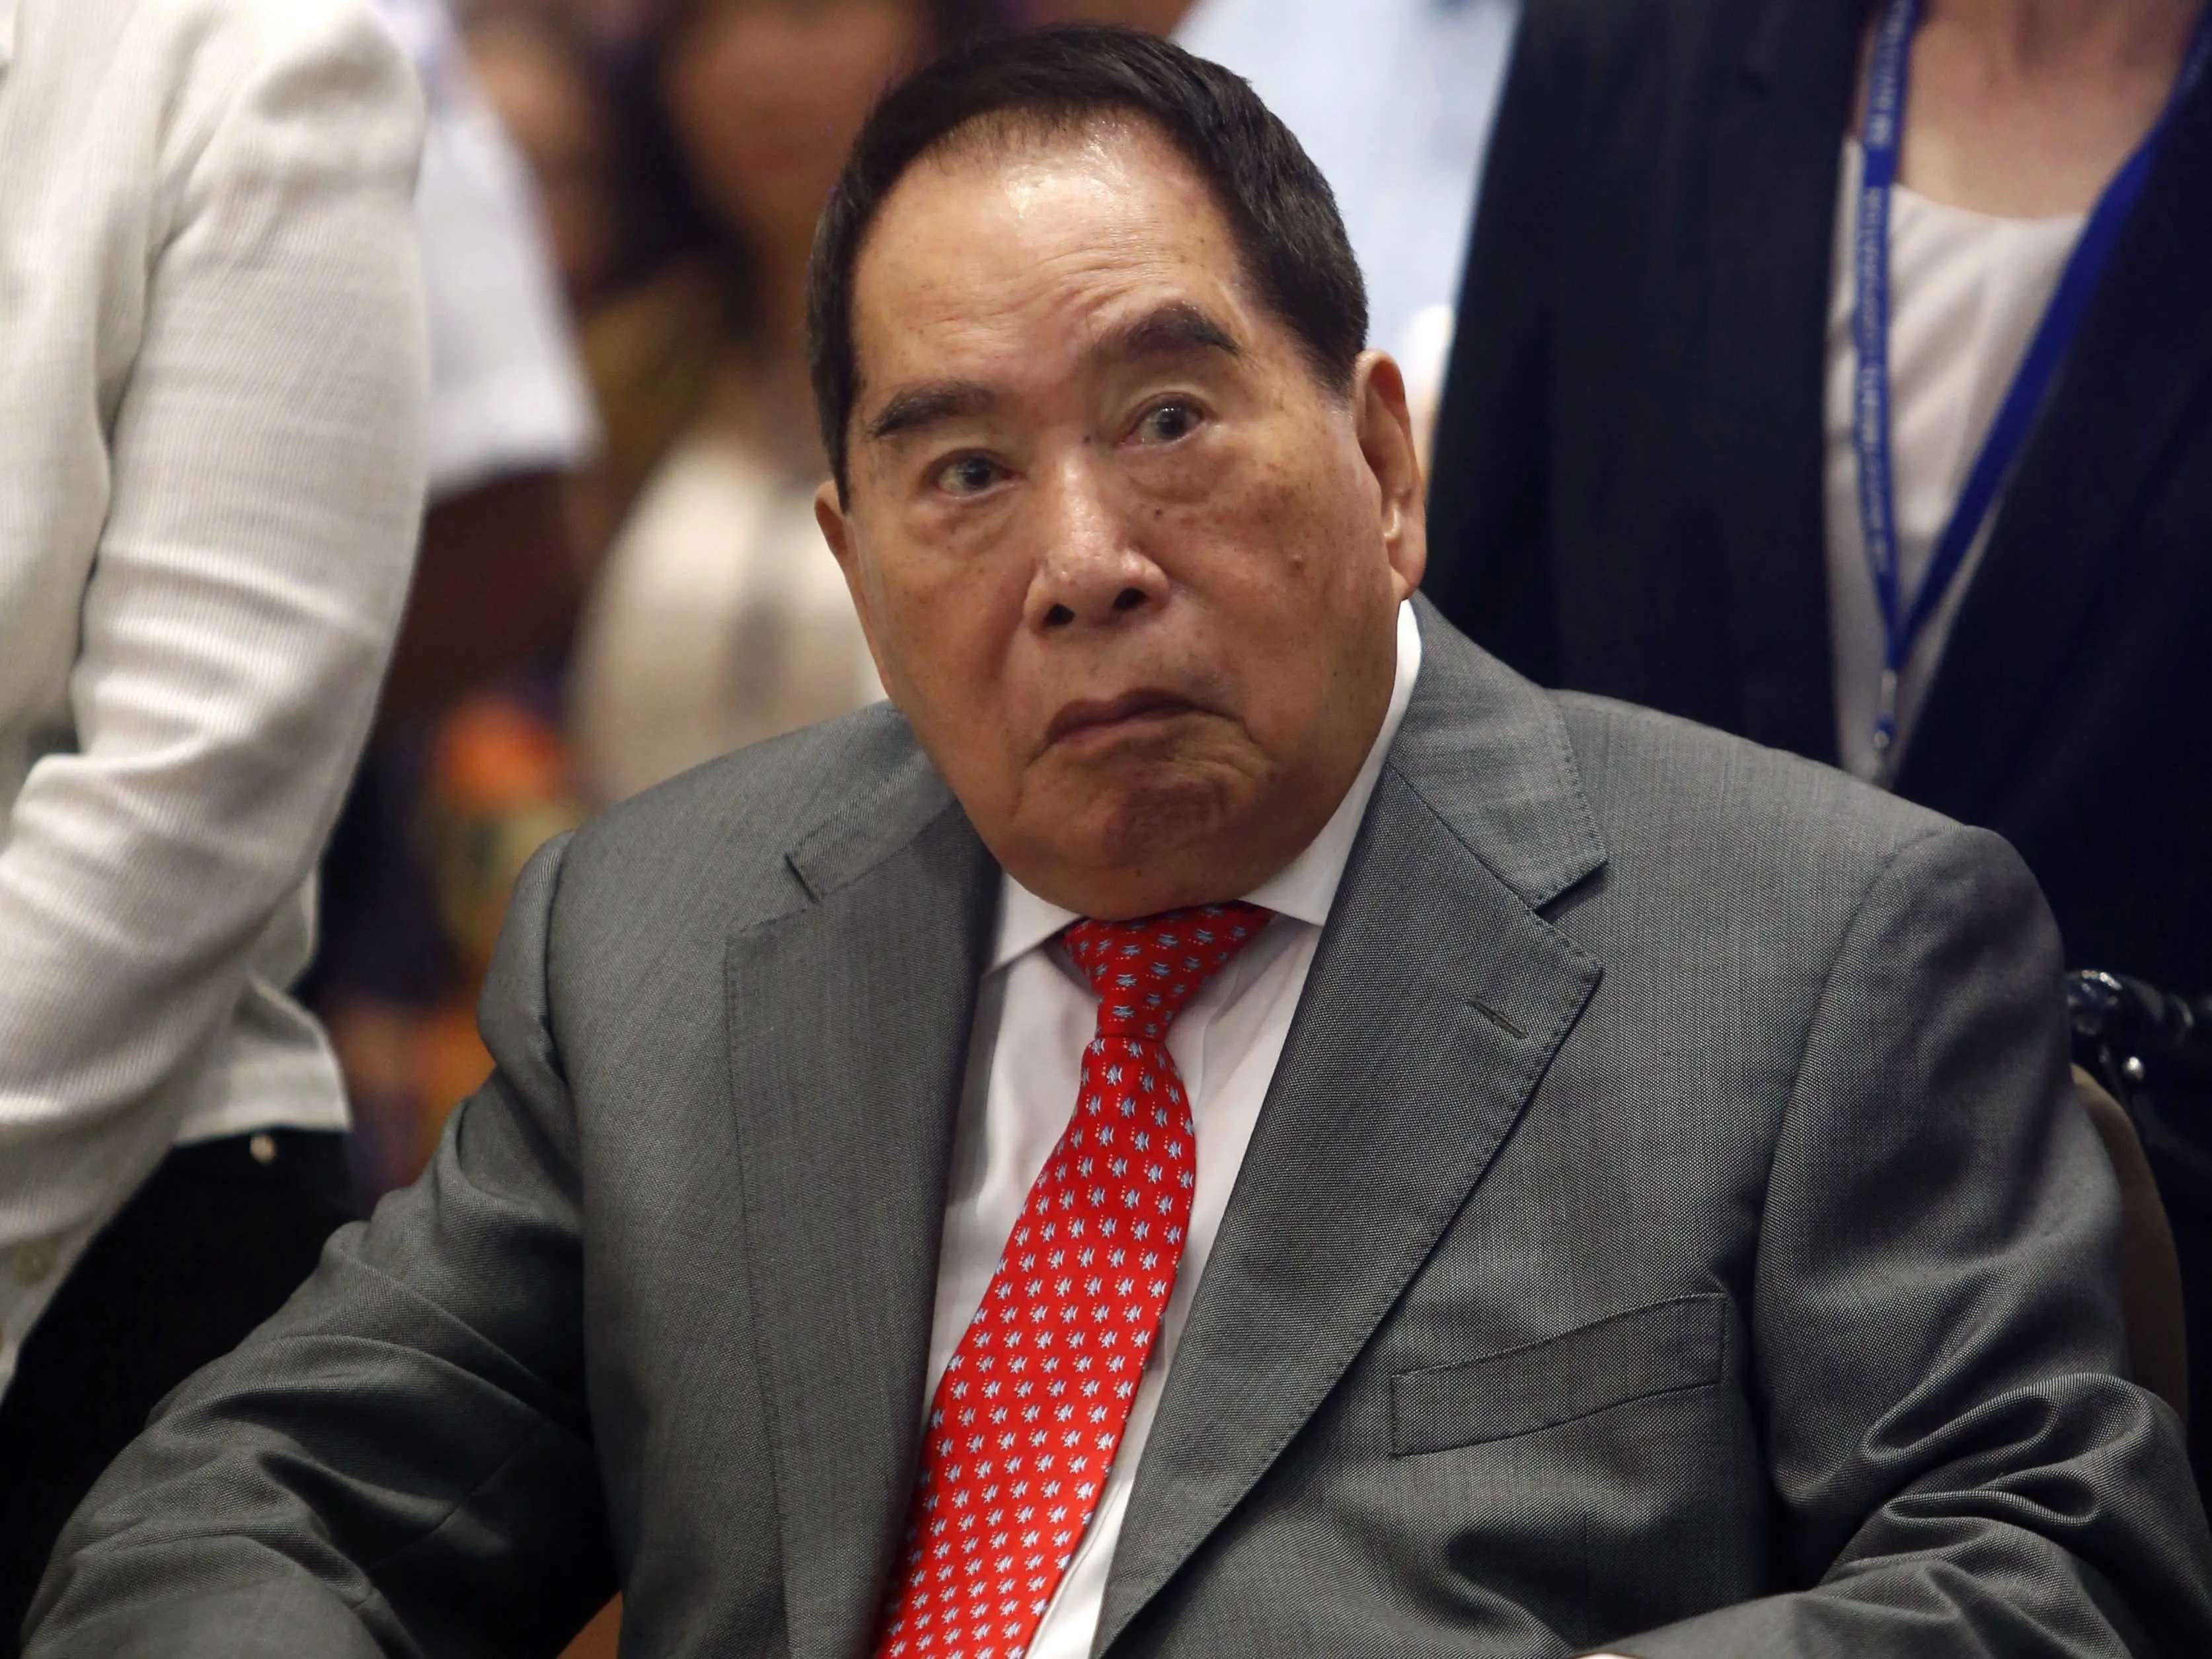 The richest Filipino: Henry Sy and family